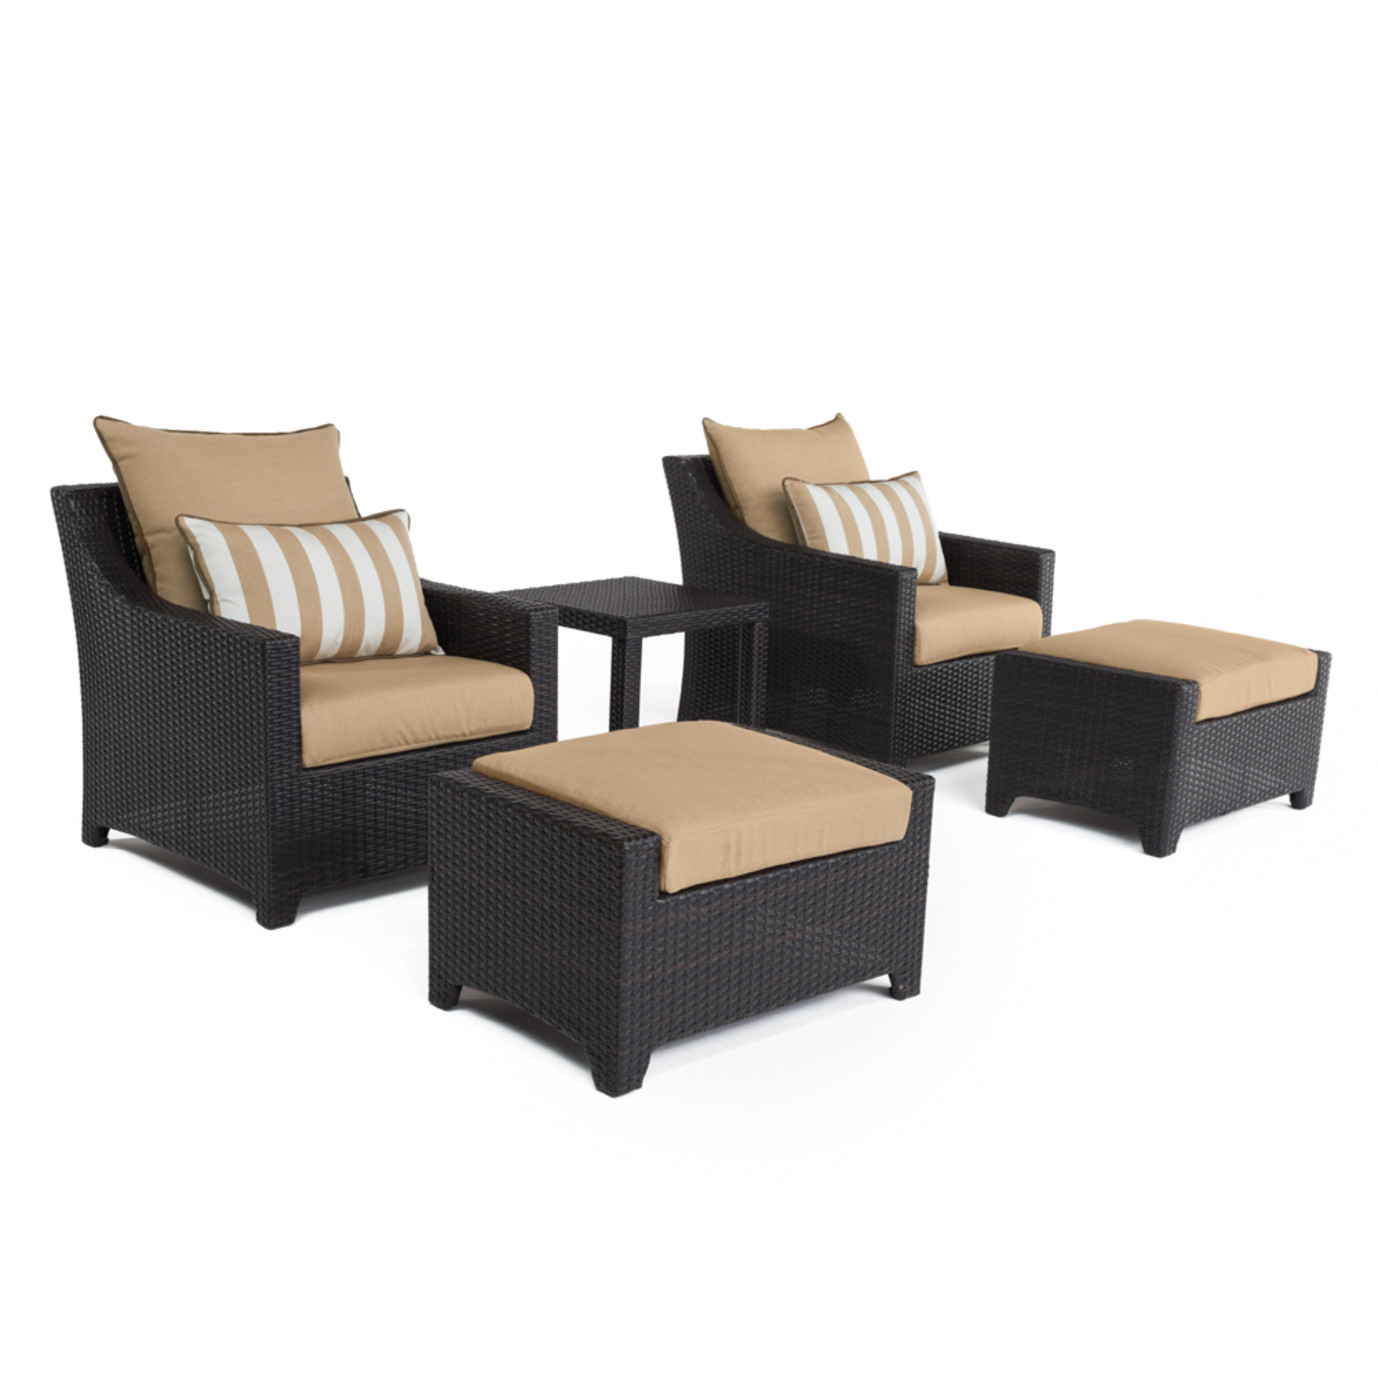 Deco™ 20pc Outdoor Estate Set - Maxim Beige